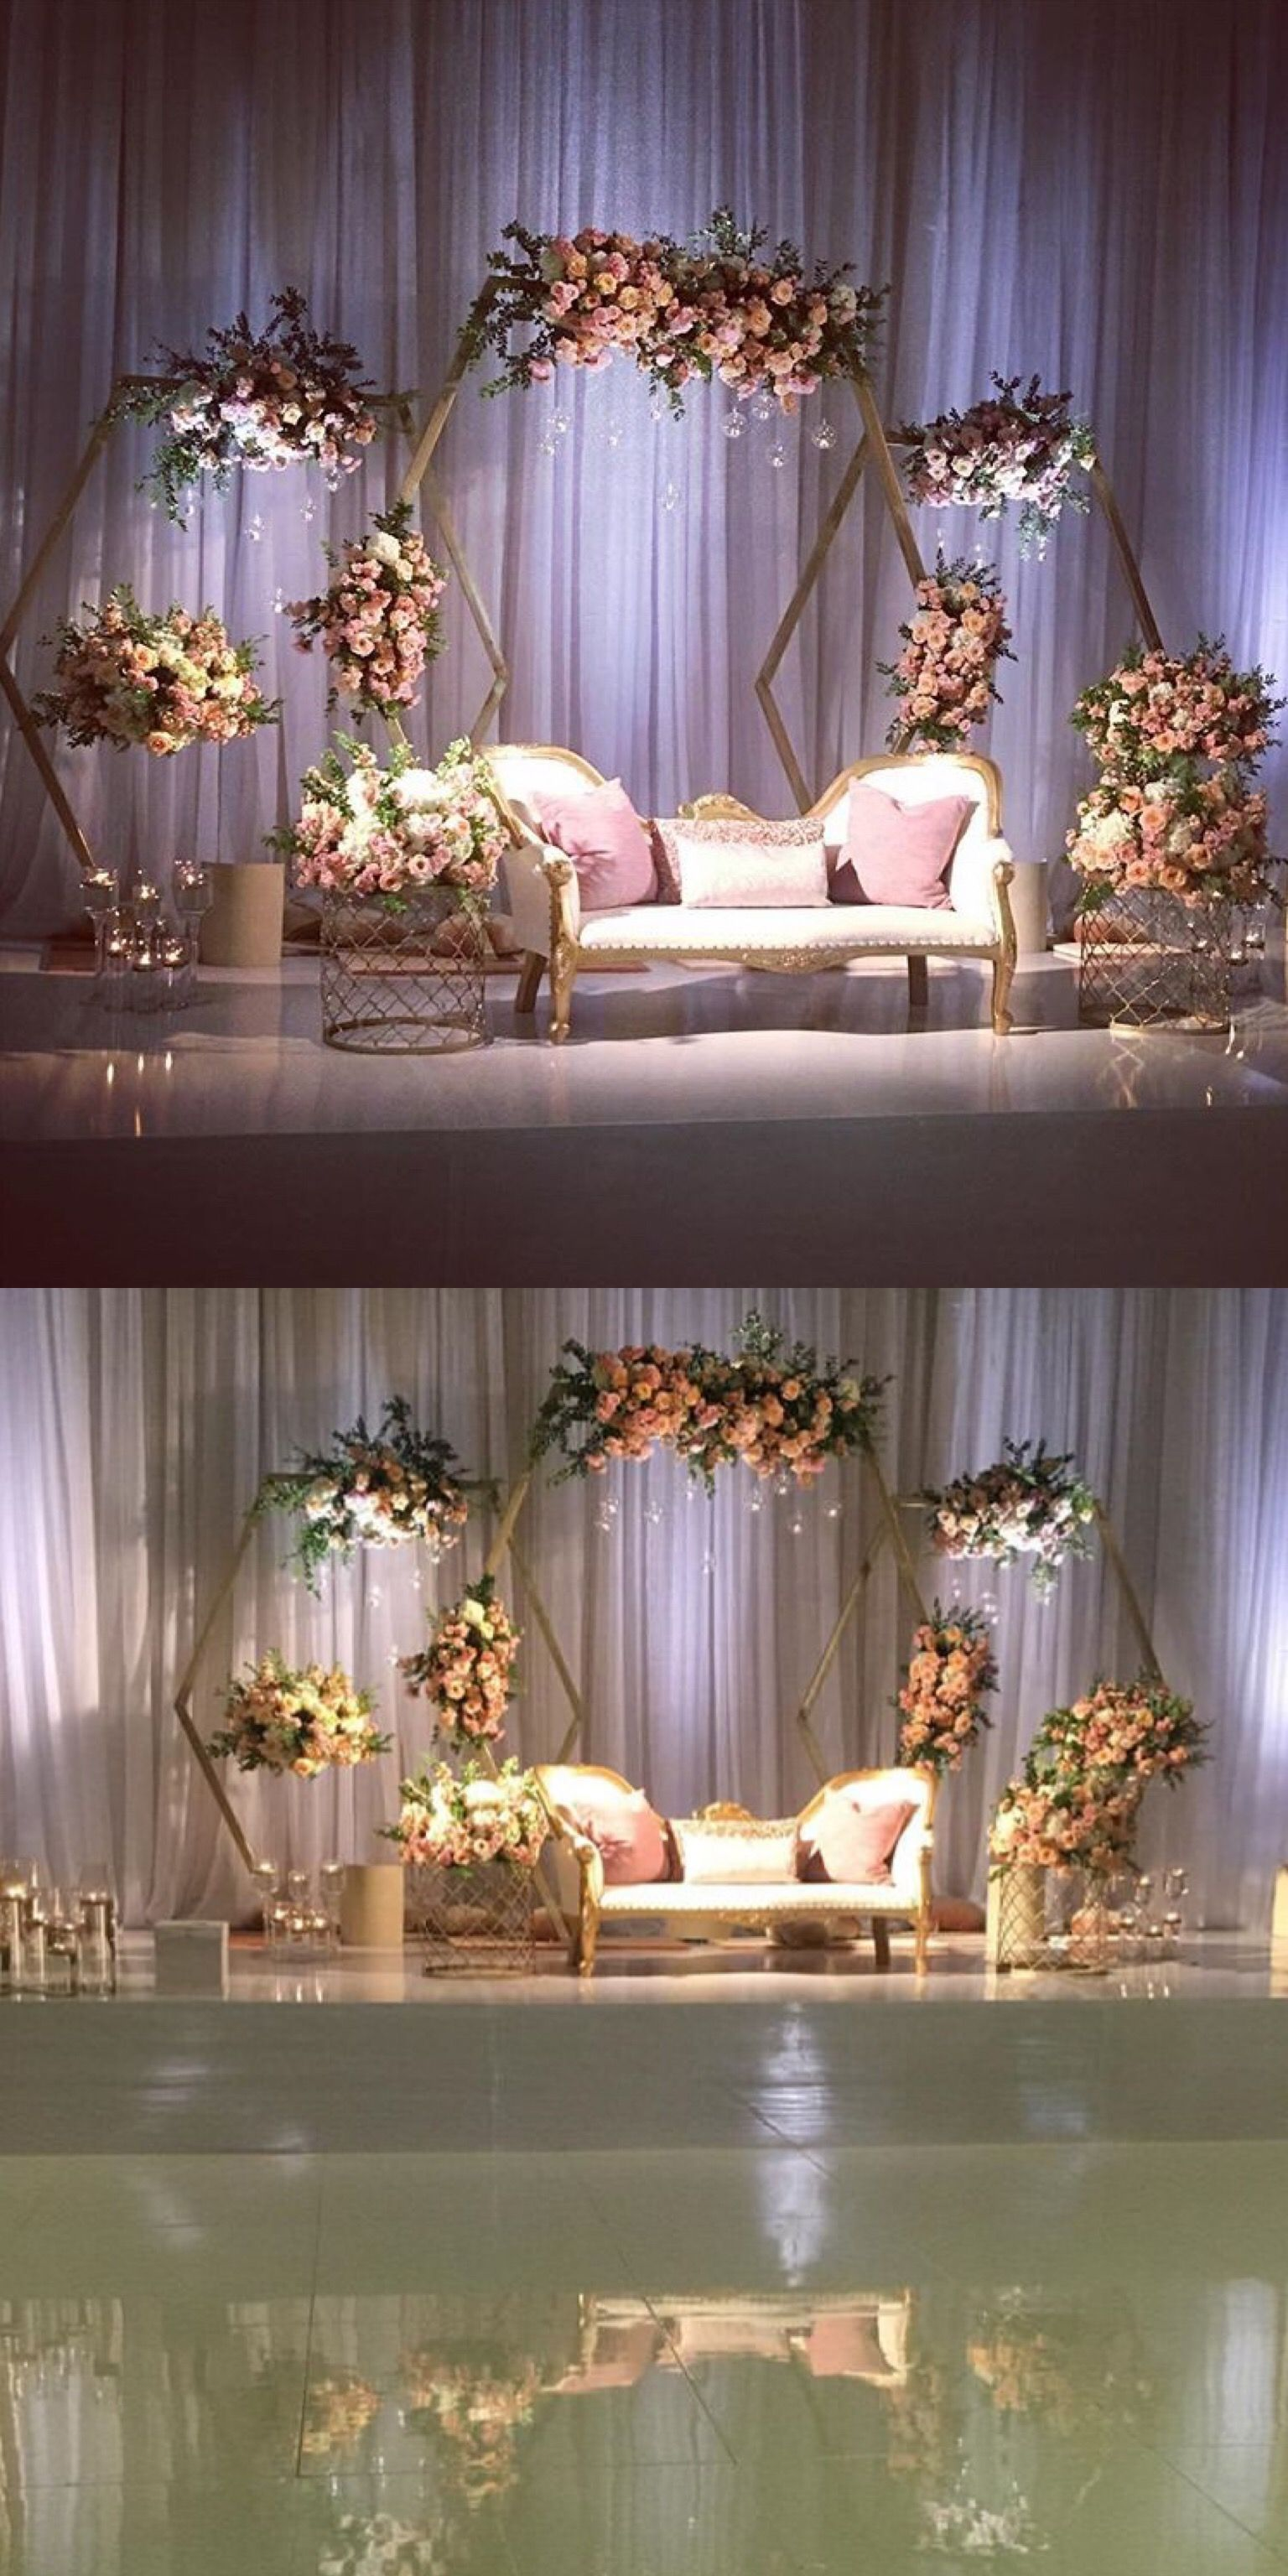 The #decoraciones with flowers for #bodas on a corner with armchairs are a great idea for a